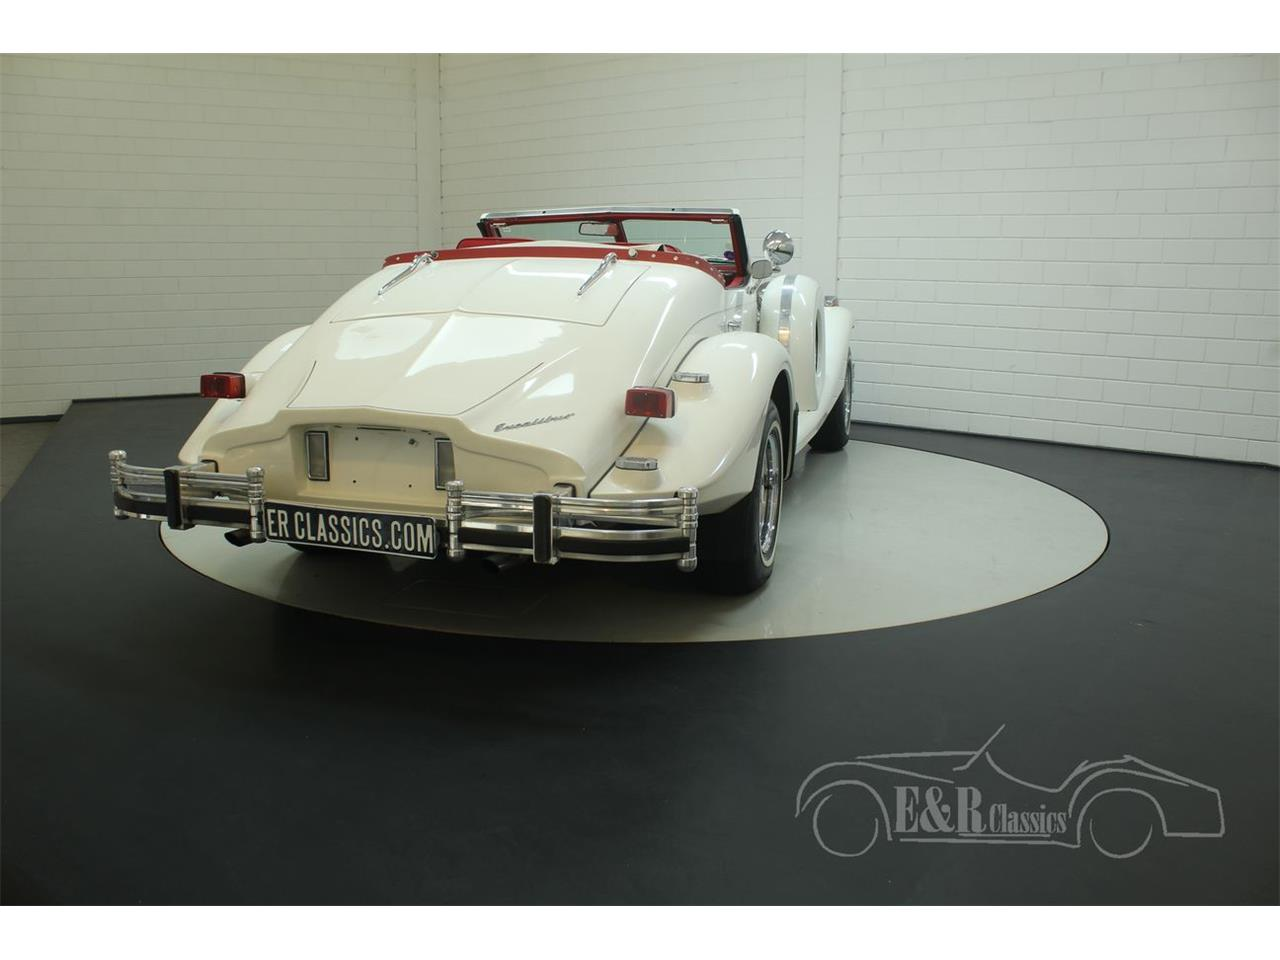 Large Picture of 1982 Excalibur Series IV Phaeton located in Waalwijk noord brabant - Q3GF